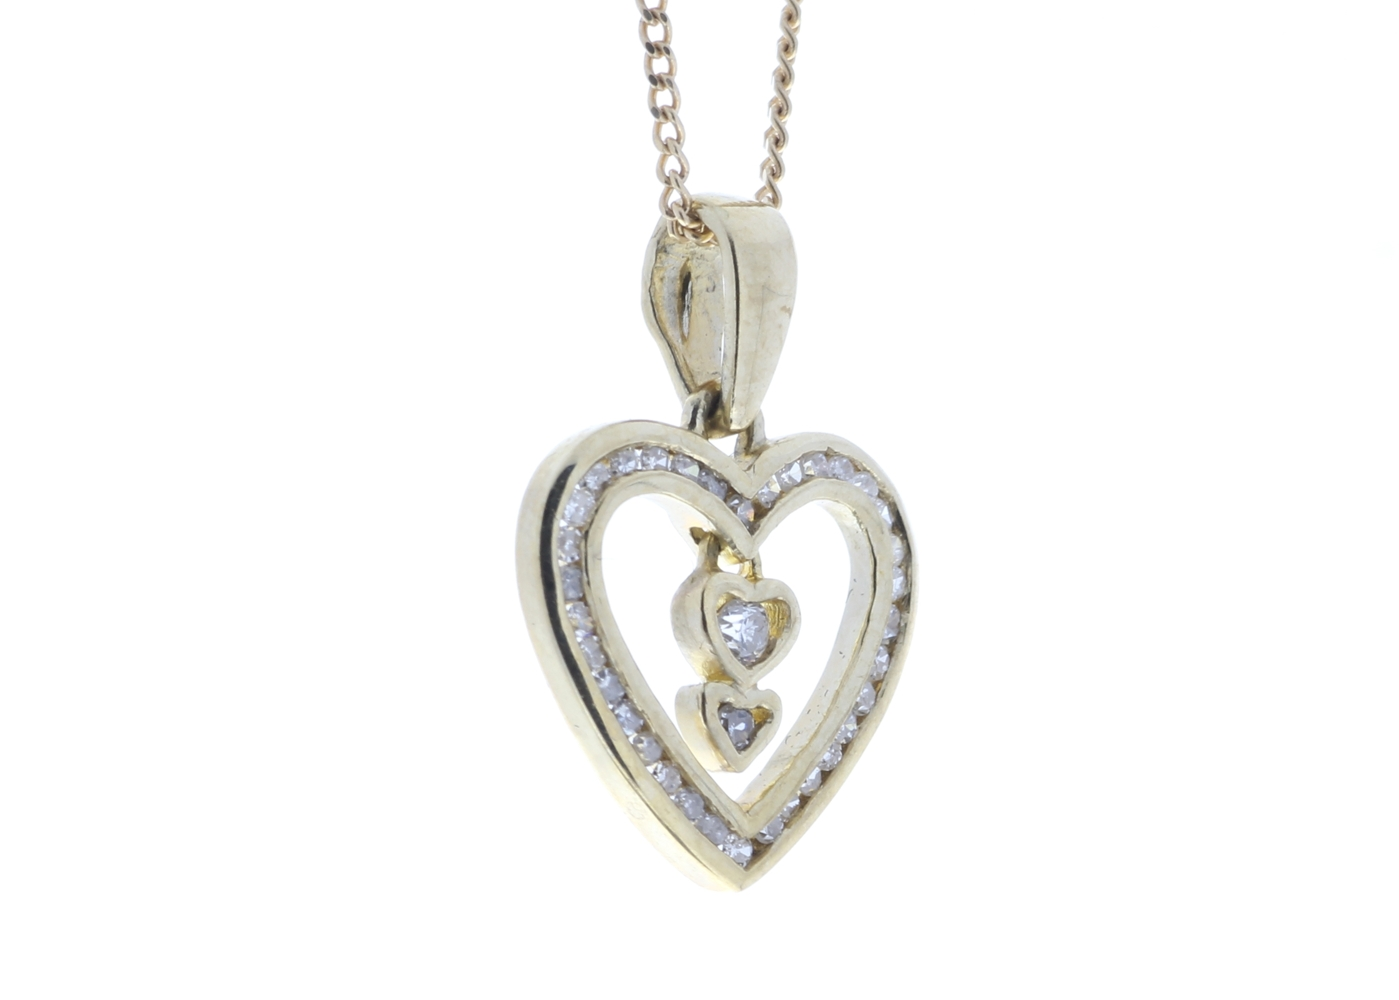 Lot 51 - 9ct Yellow Gold Heart Pendant 0.21 Carats